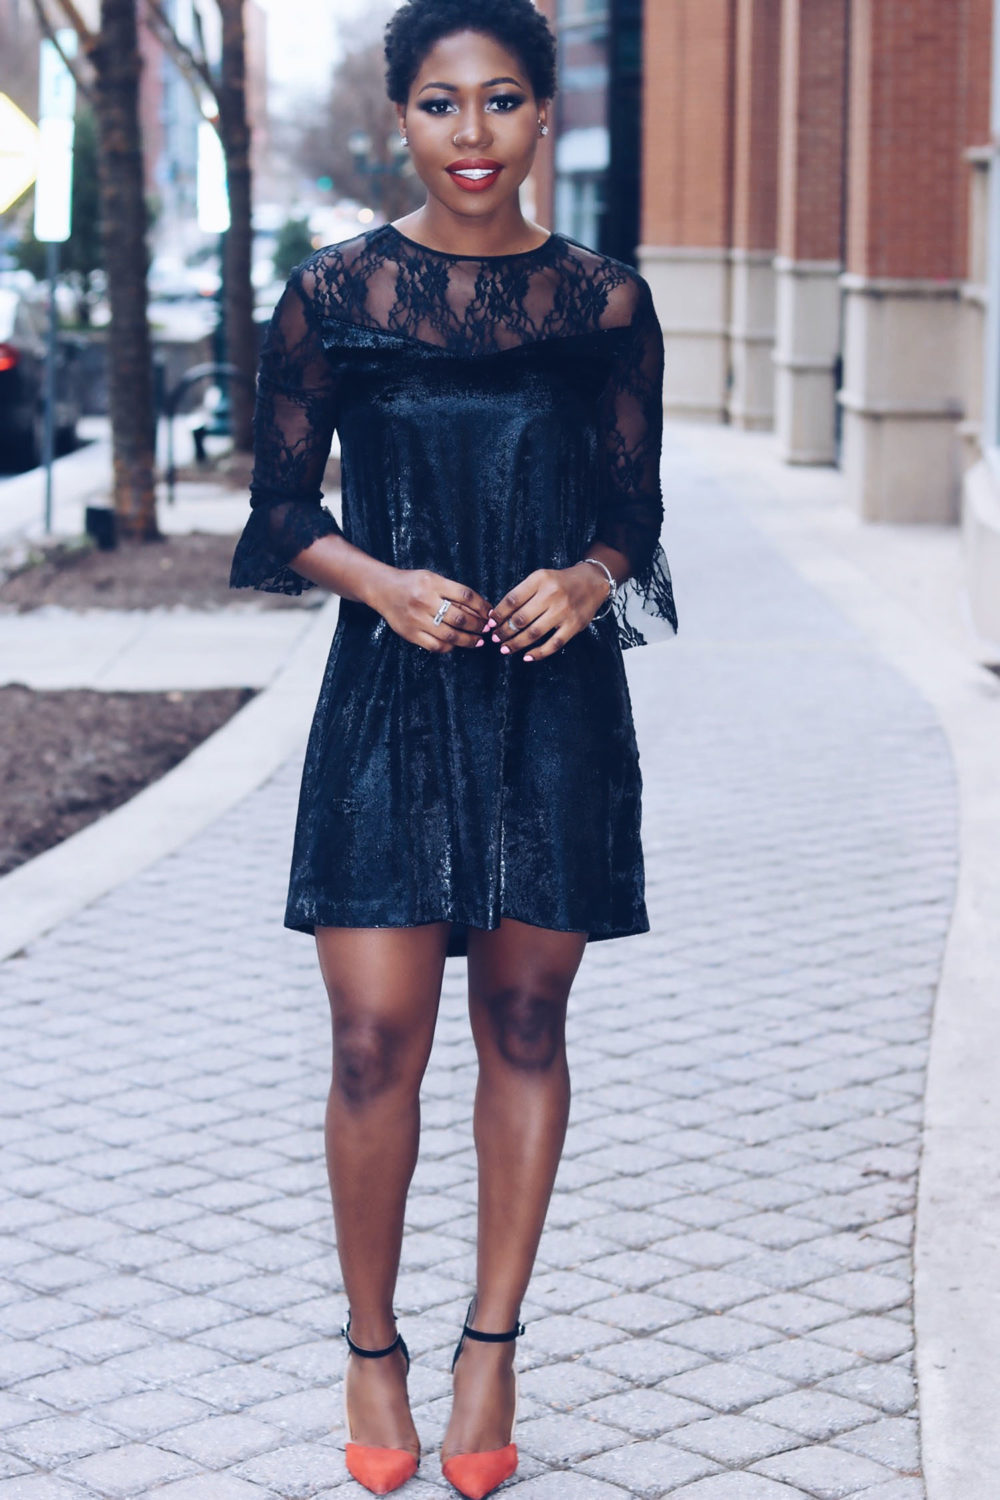 style-synopsis-black-lace-dress-valentines-day-look